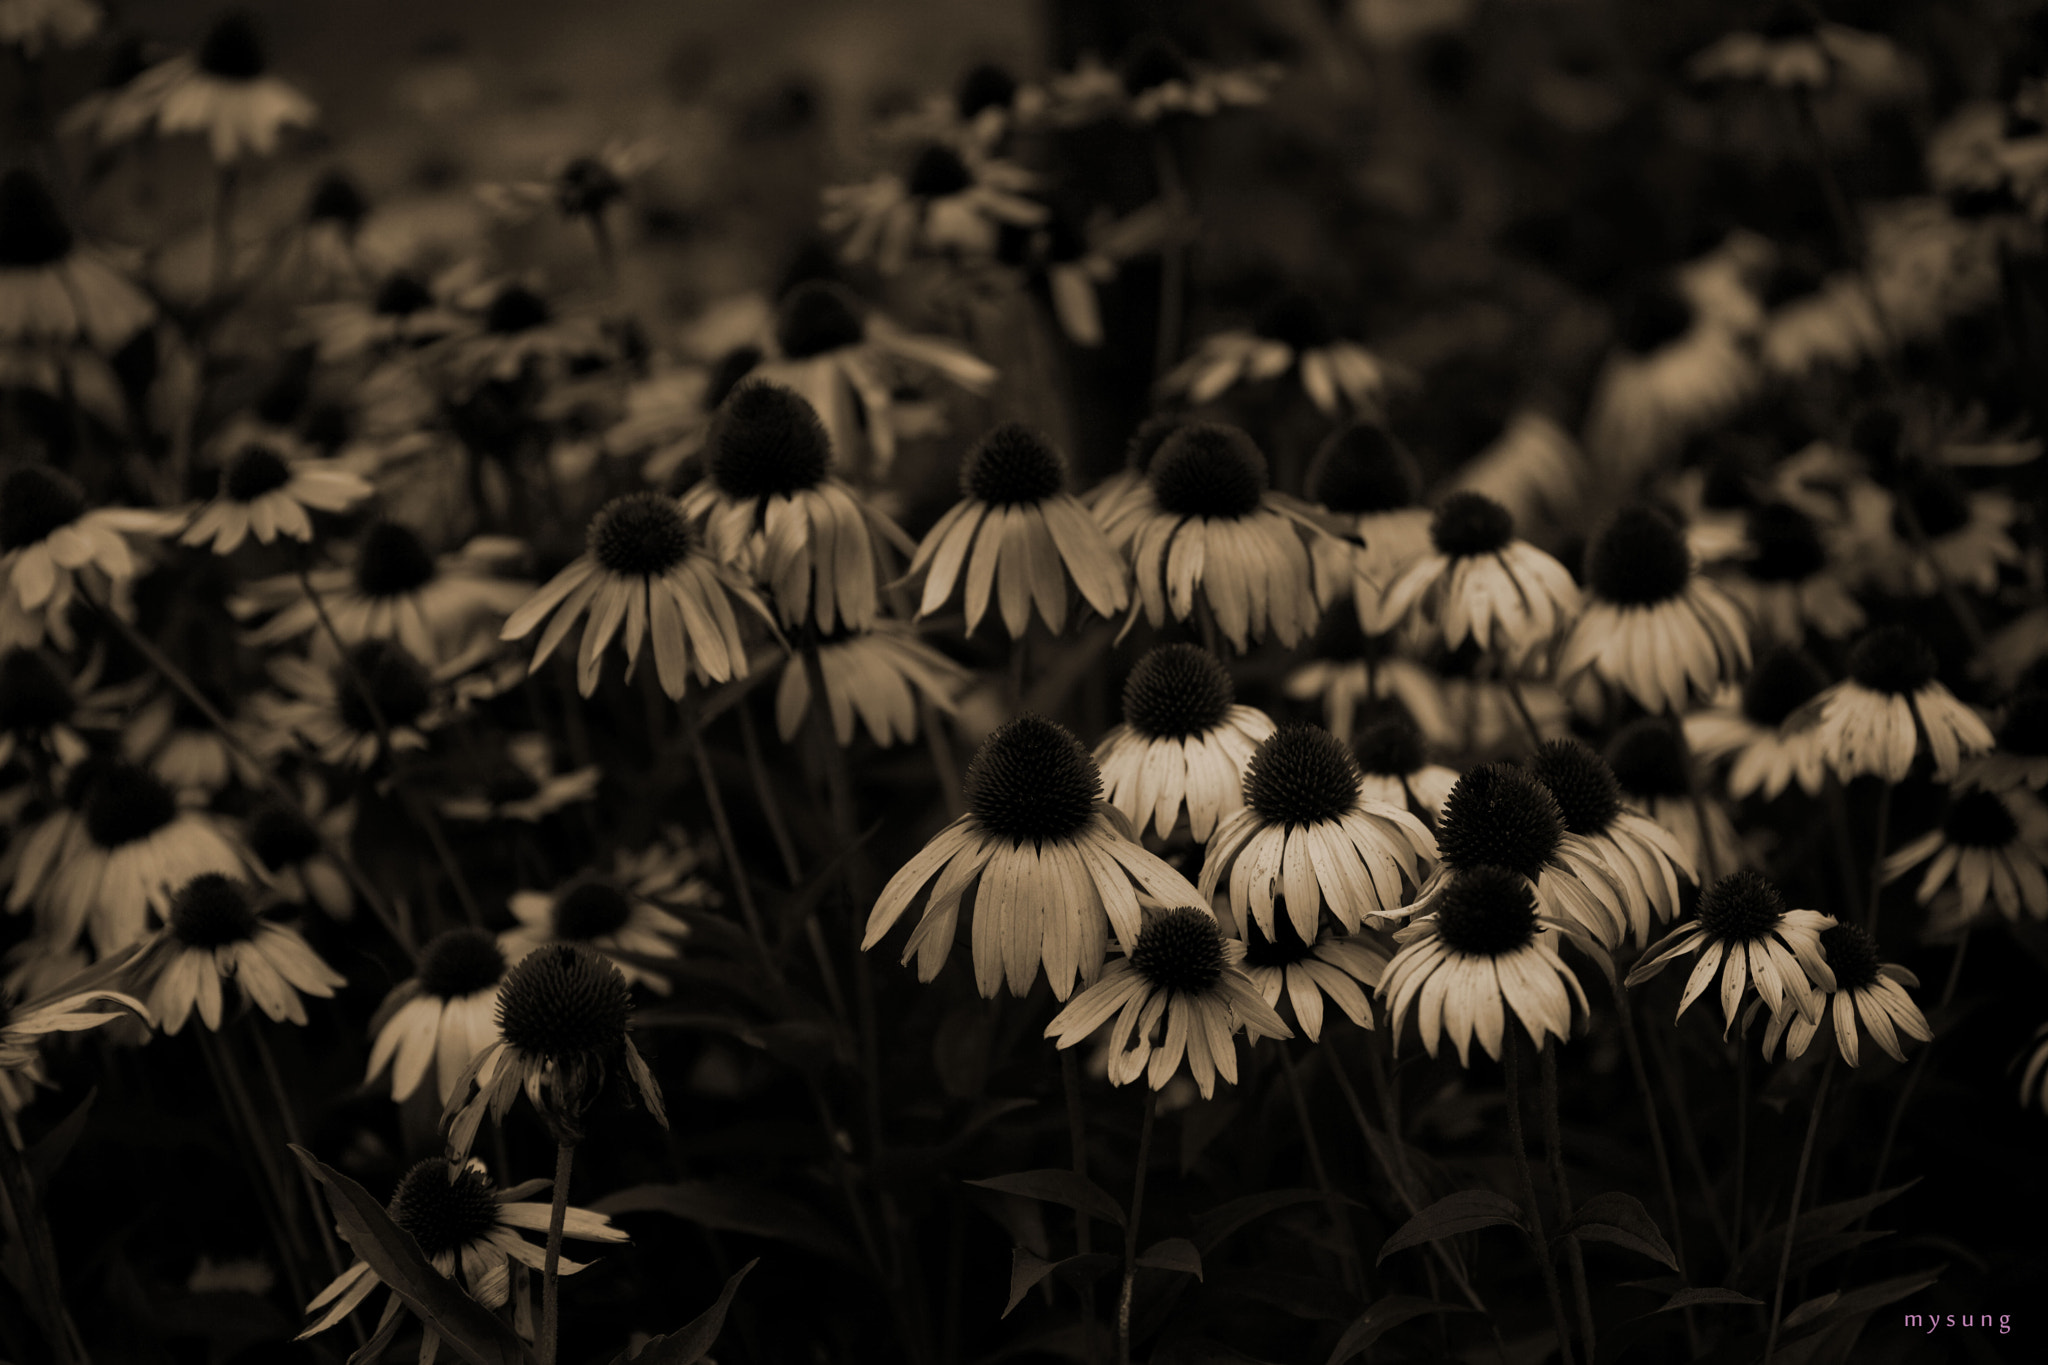 Photograph Echinacea by mi yong sung on 500px